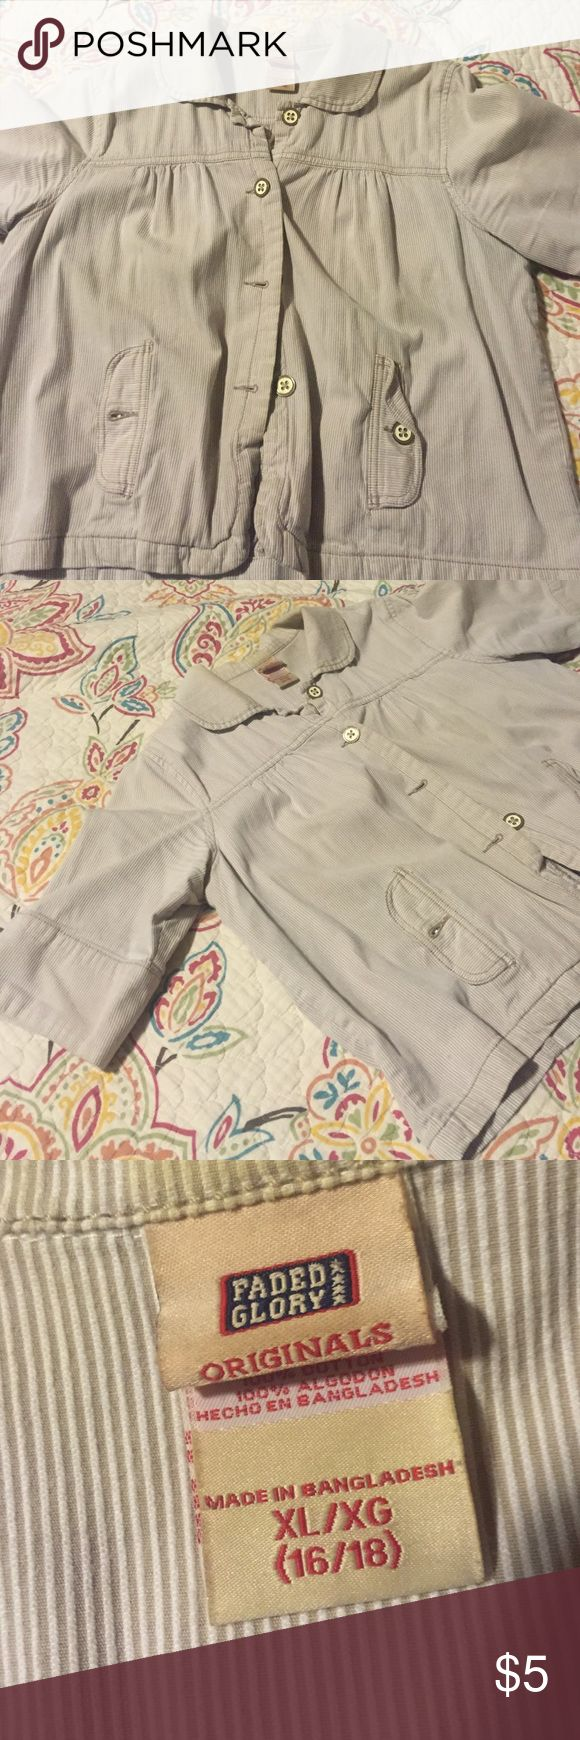 Adorable jacket! Re-poshing. Didn't wear it too much.  Looks great with denim jeans or a skirt. Faded Glory Jackets & Coats Blazers